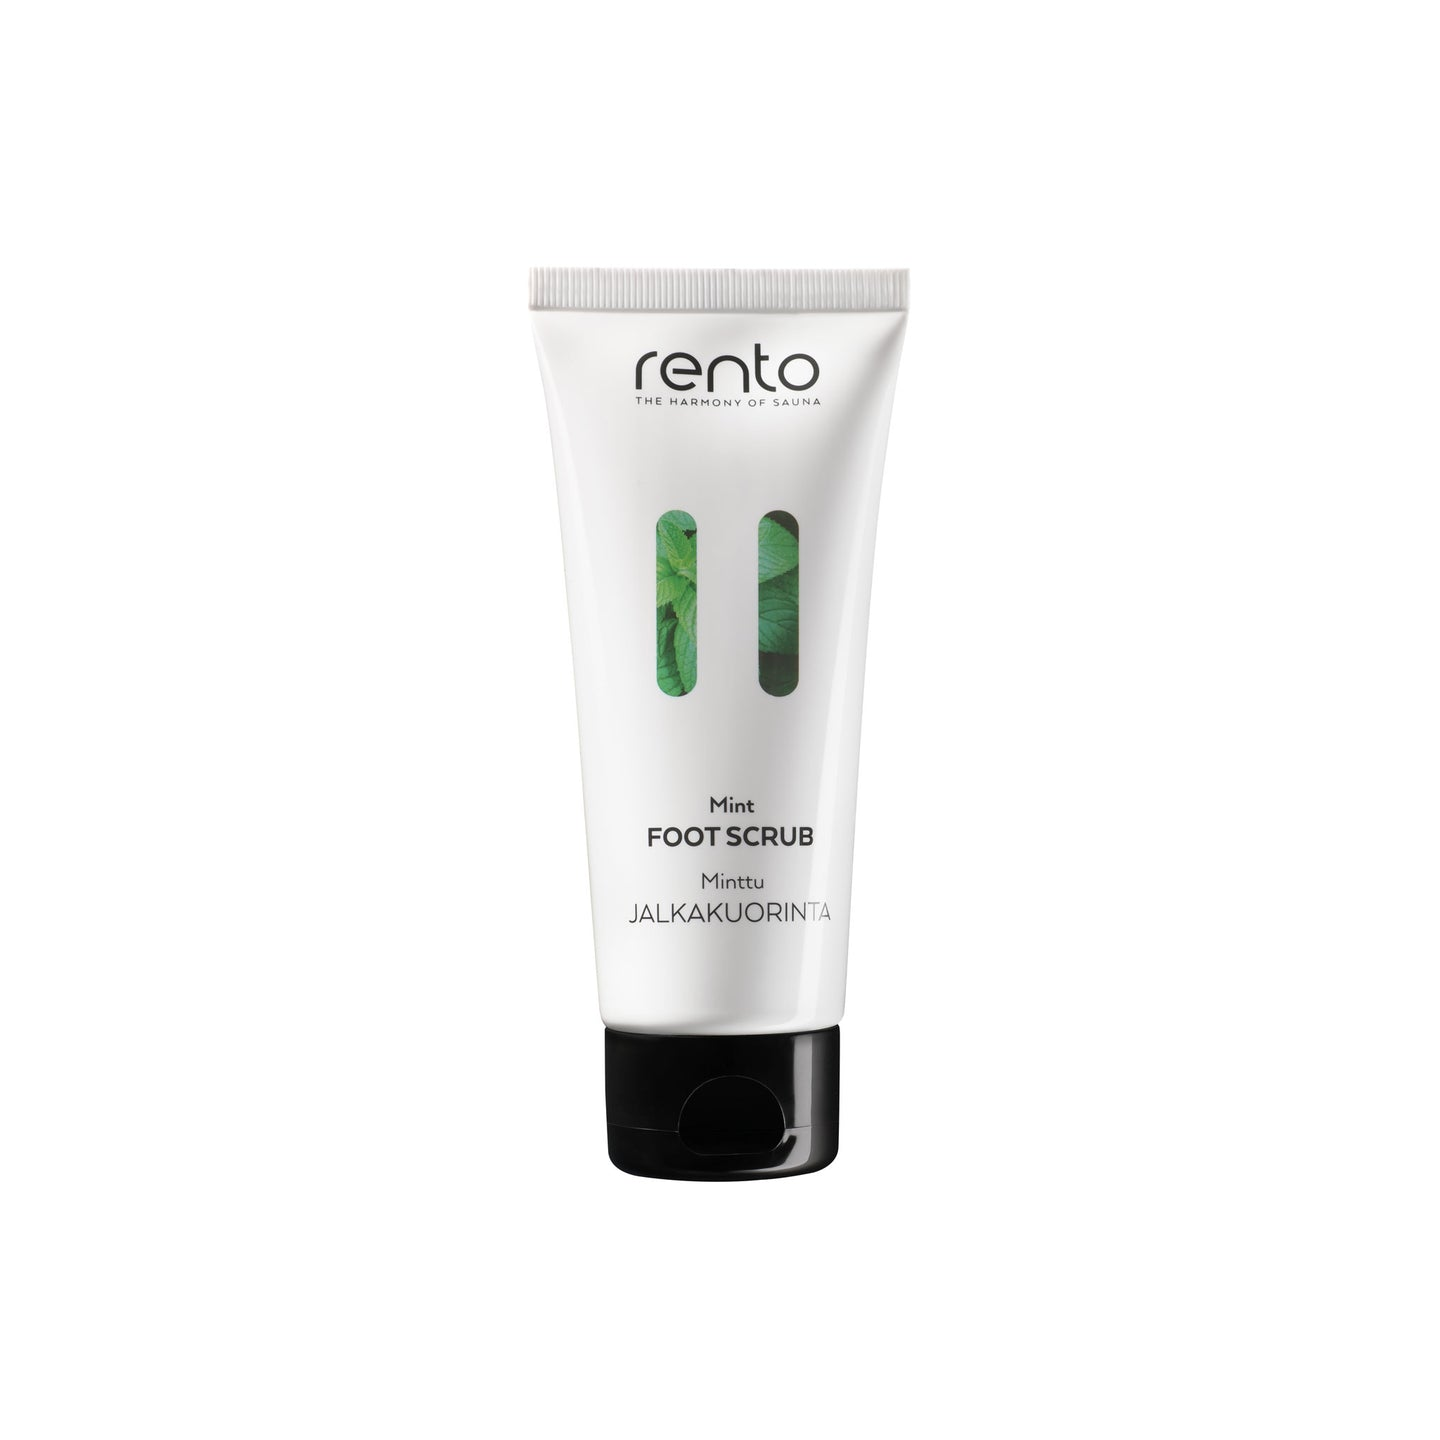 Mint Foot Scrub 100ml by Rento | Finnmark Sauna  Foot Scrub Finnmark Sauna